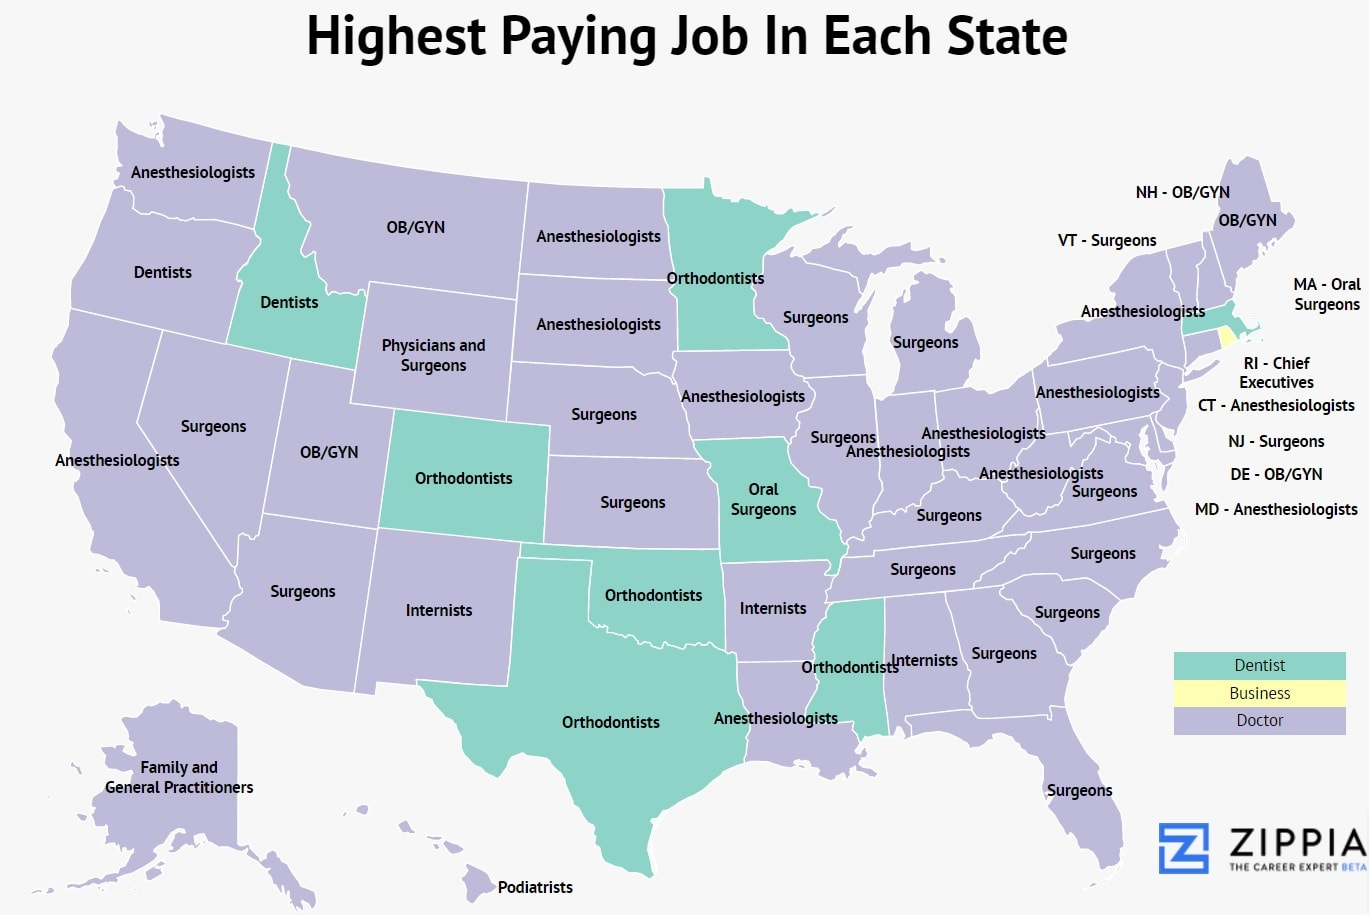 highest-paying-job-in-each-state